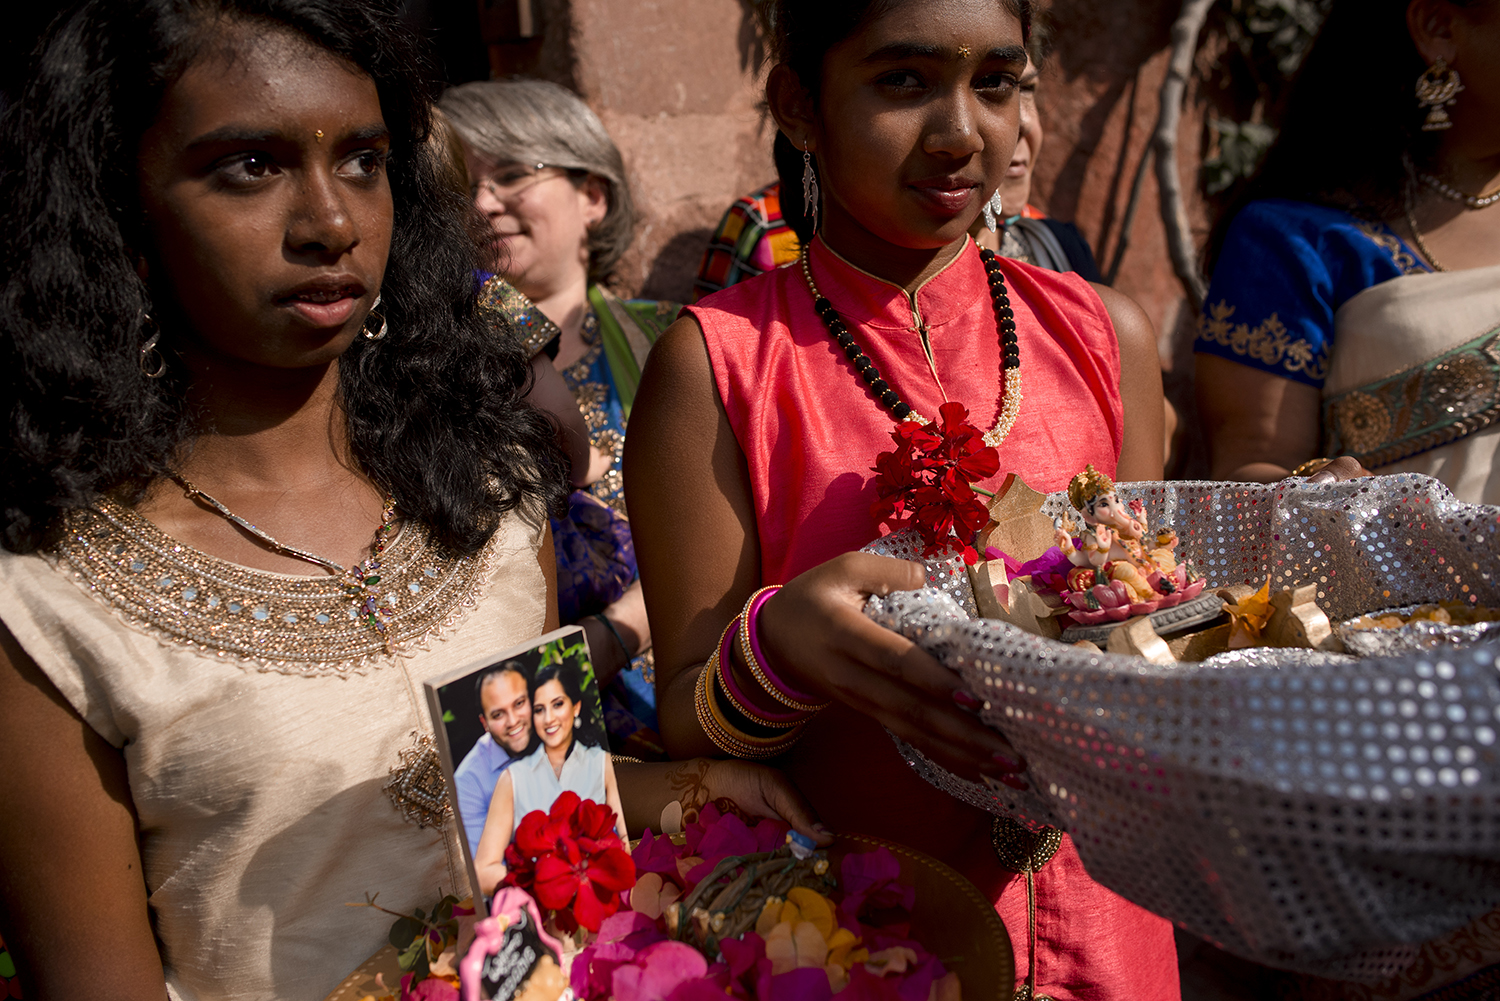 indian_wedding_san_miguel_de_allende_chio_garcia_photographer (30).jpg